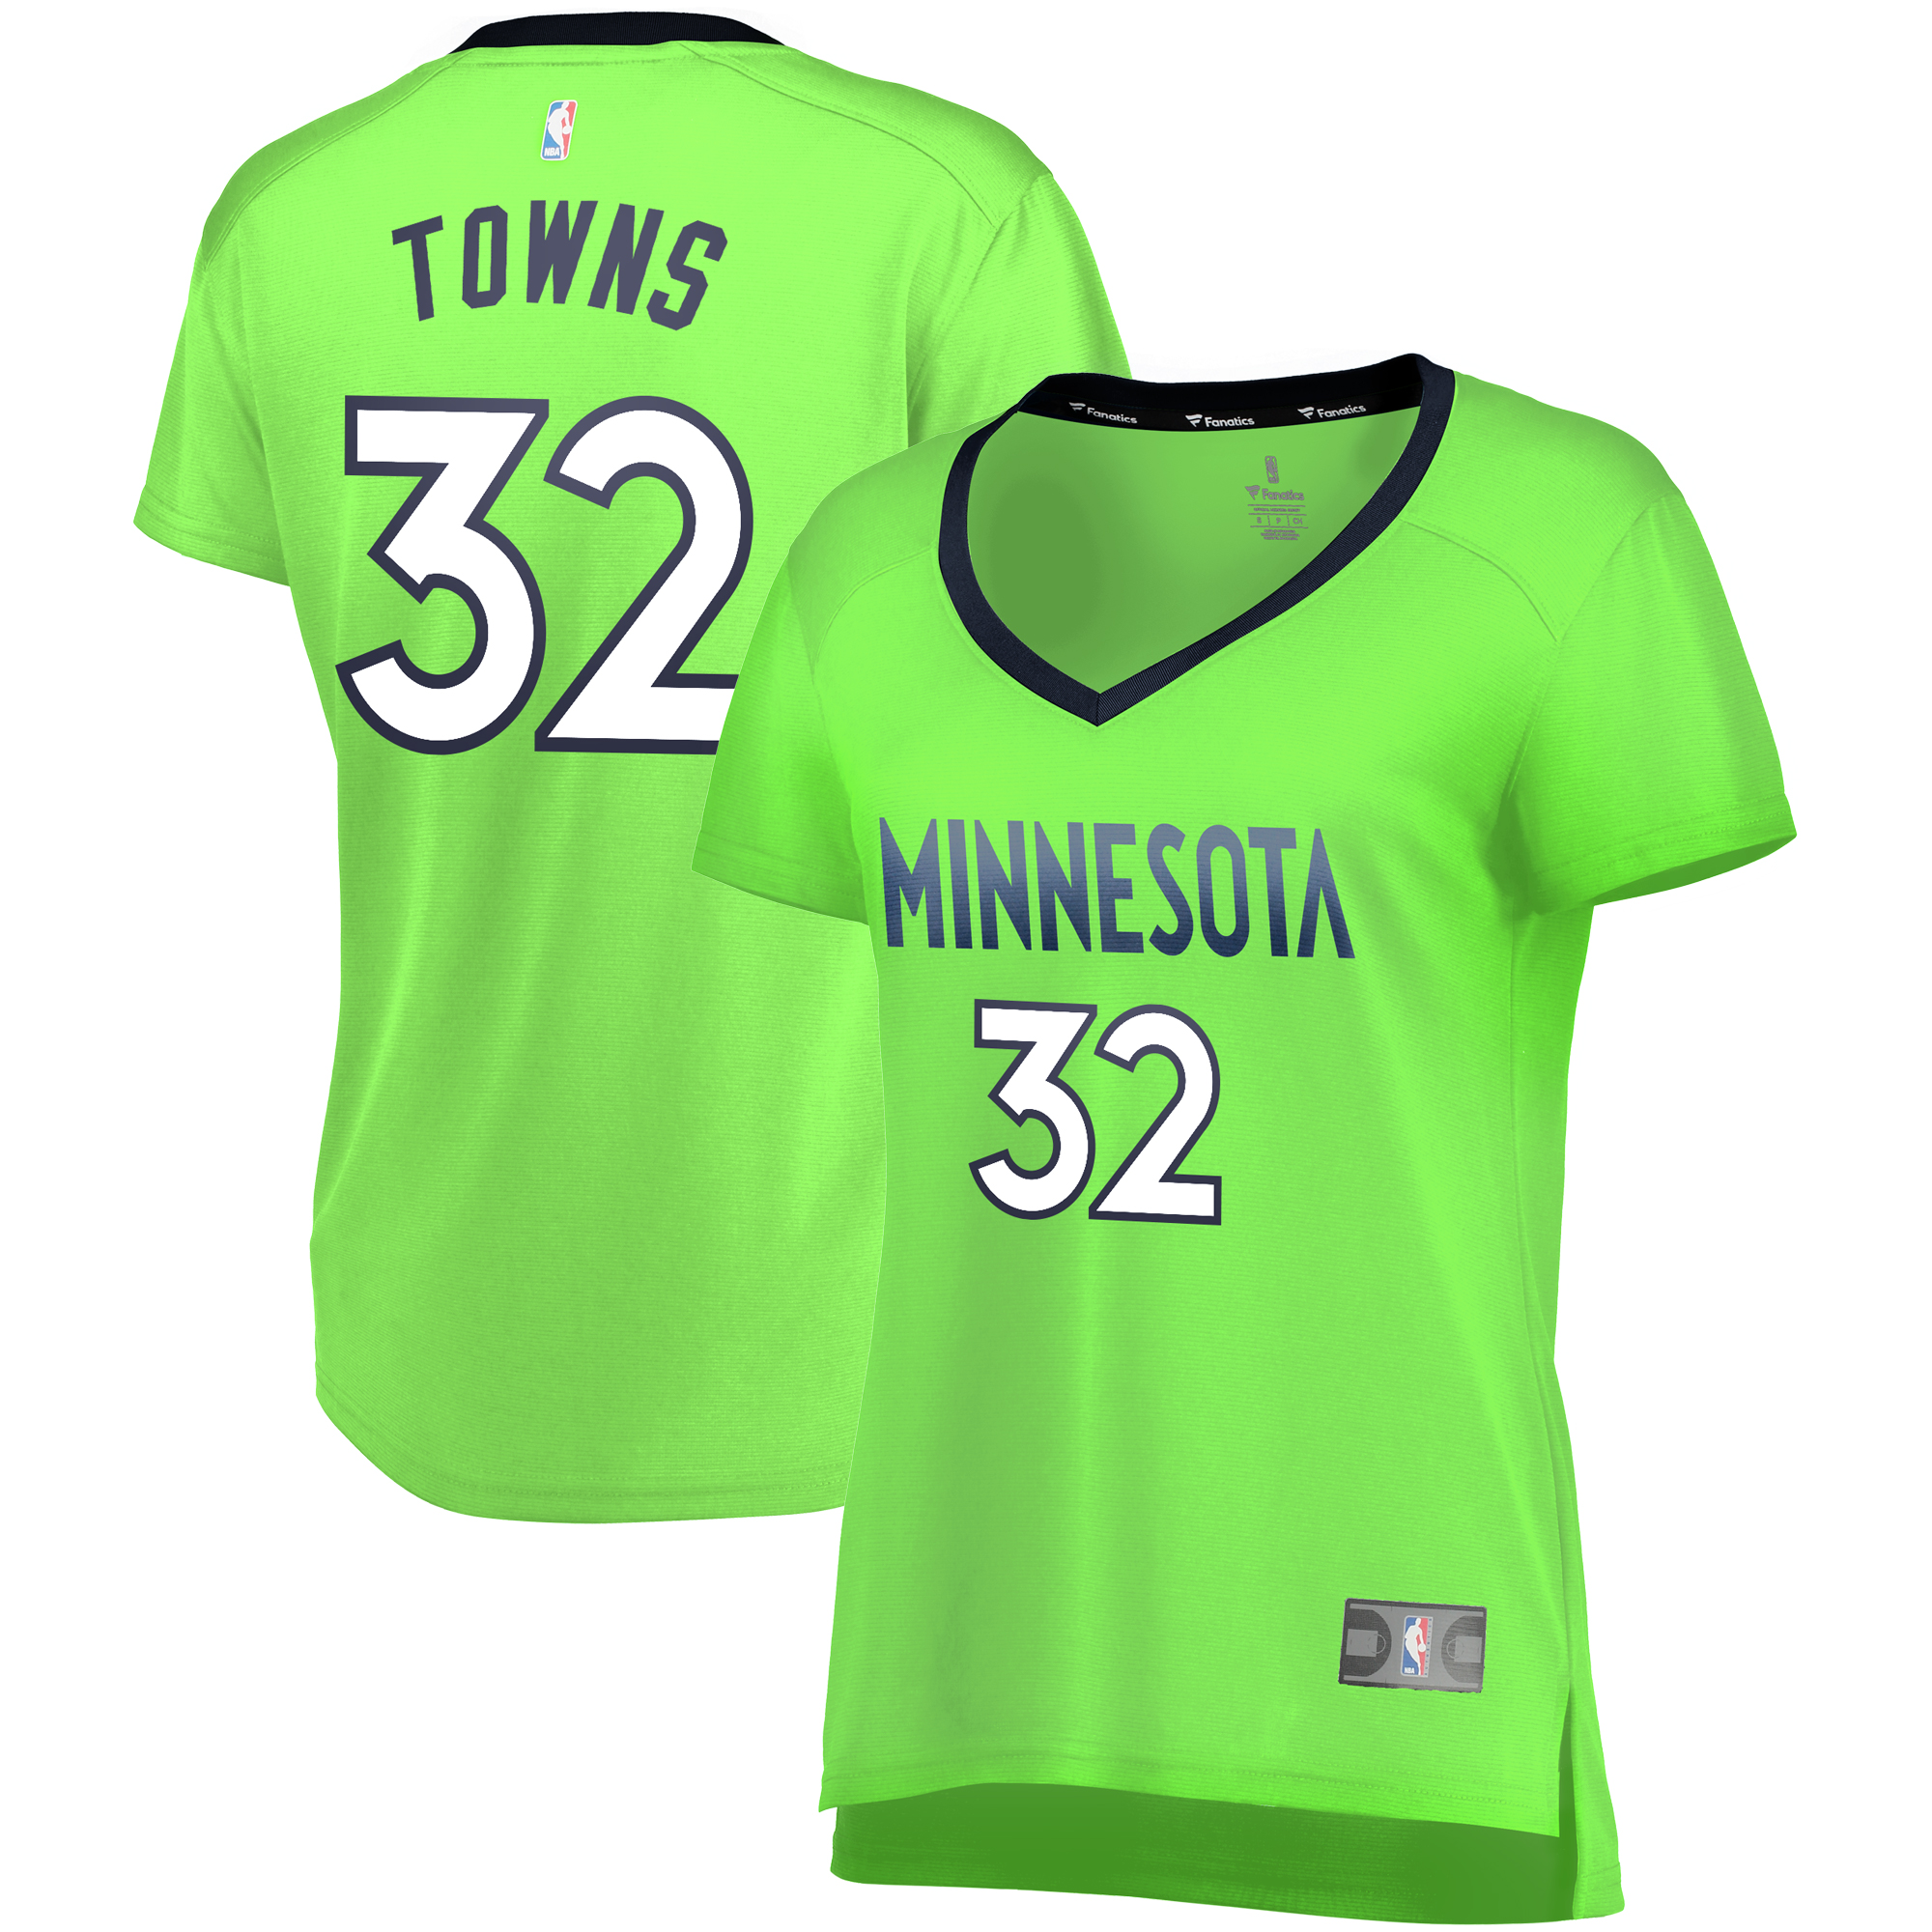 Karl-Anthony Towns Minnesota Timberwolves Fanatics Branded Women's Fast Break Replica Statement Edition Jersey - Neon Green